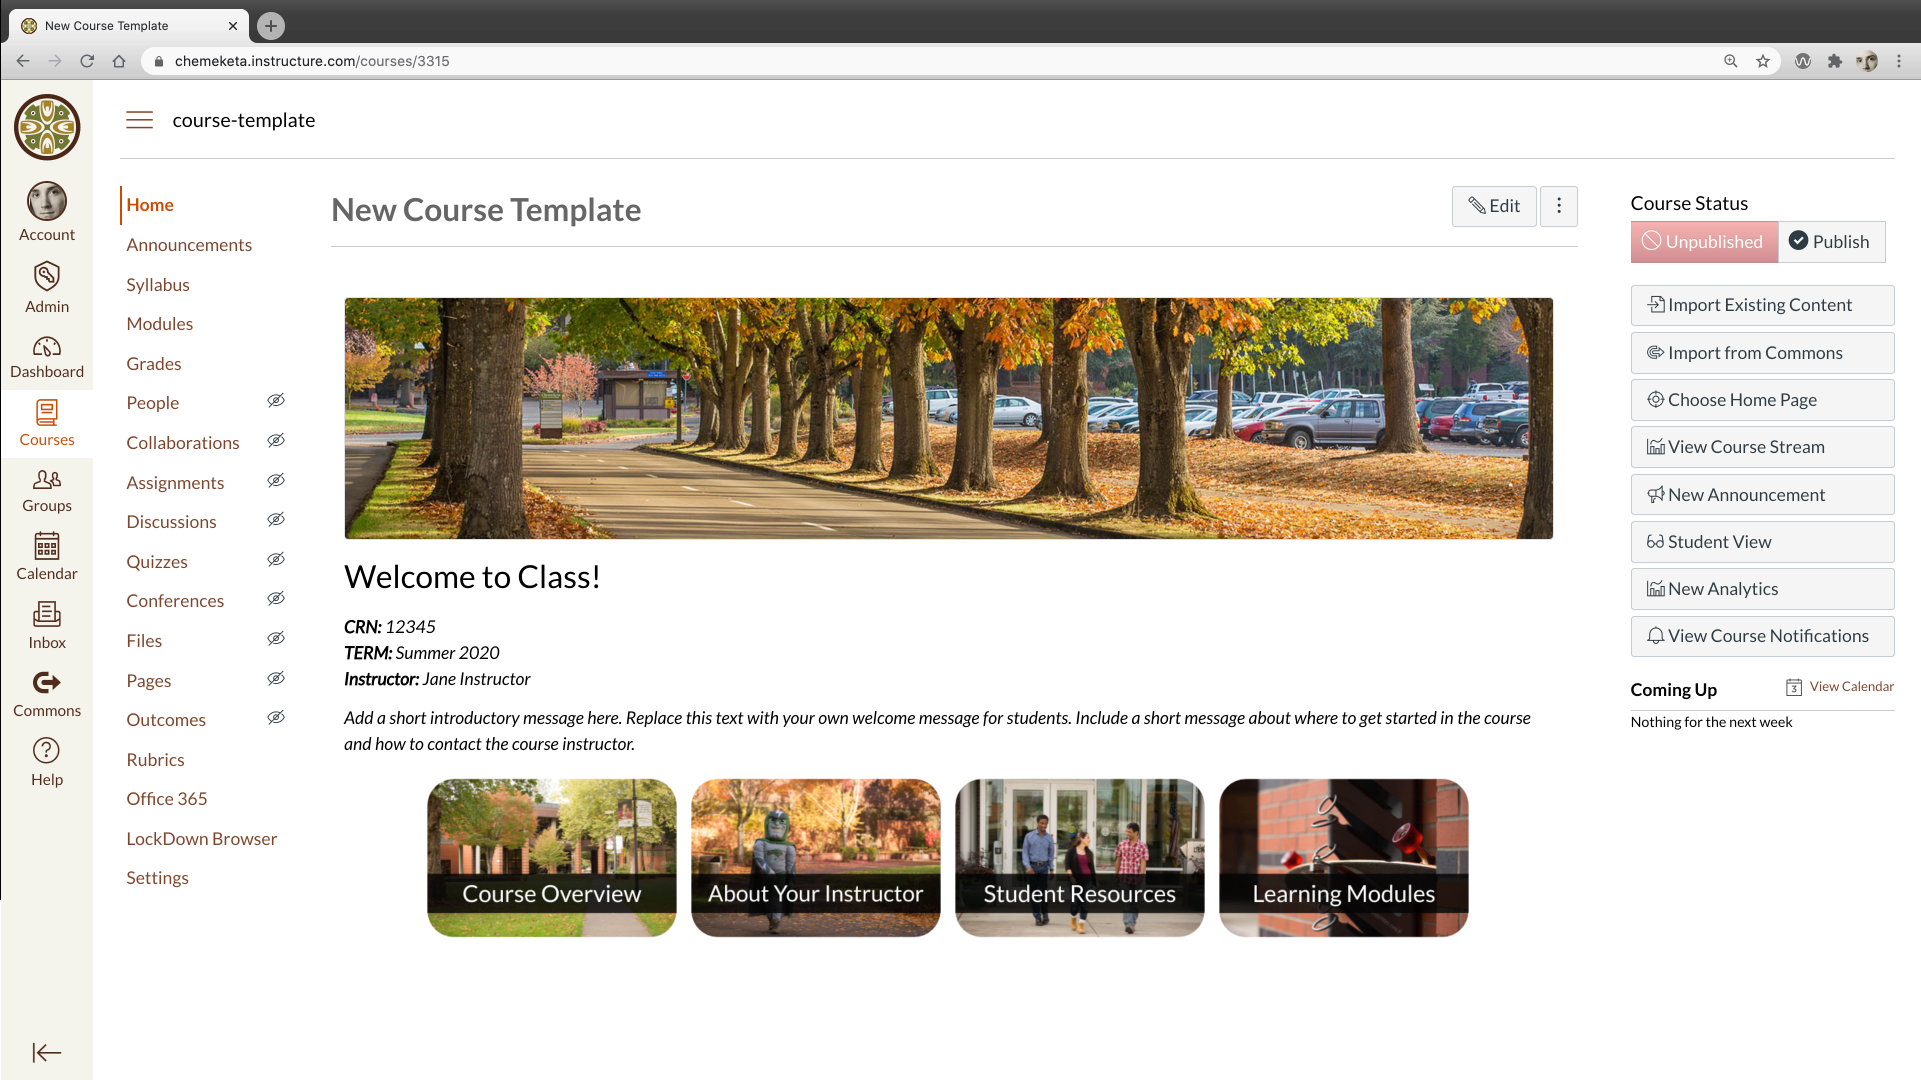 Screenshot above showing the Canvas New Course Template homepage from Fall 2020.